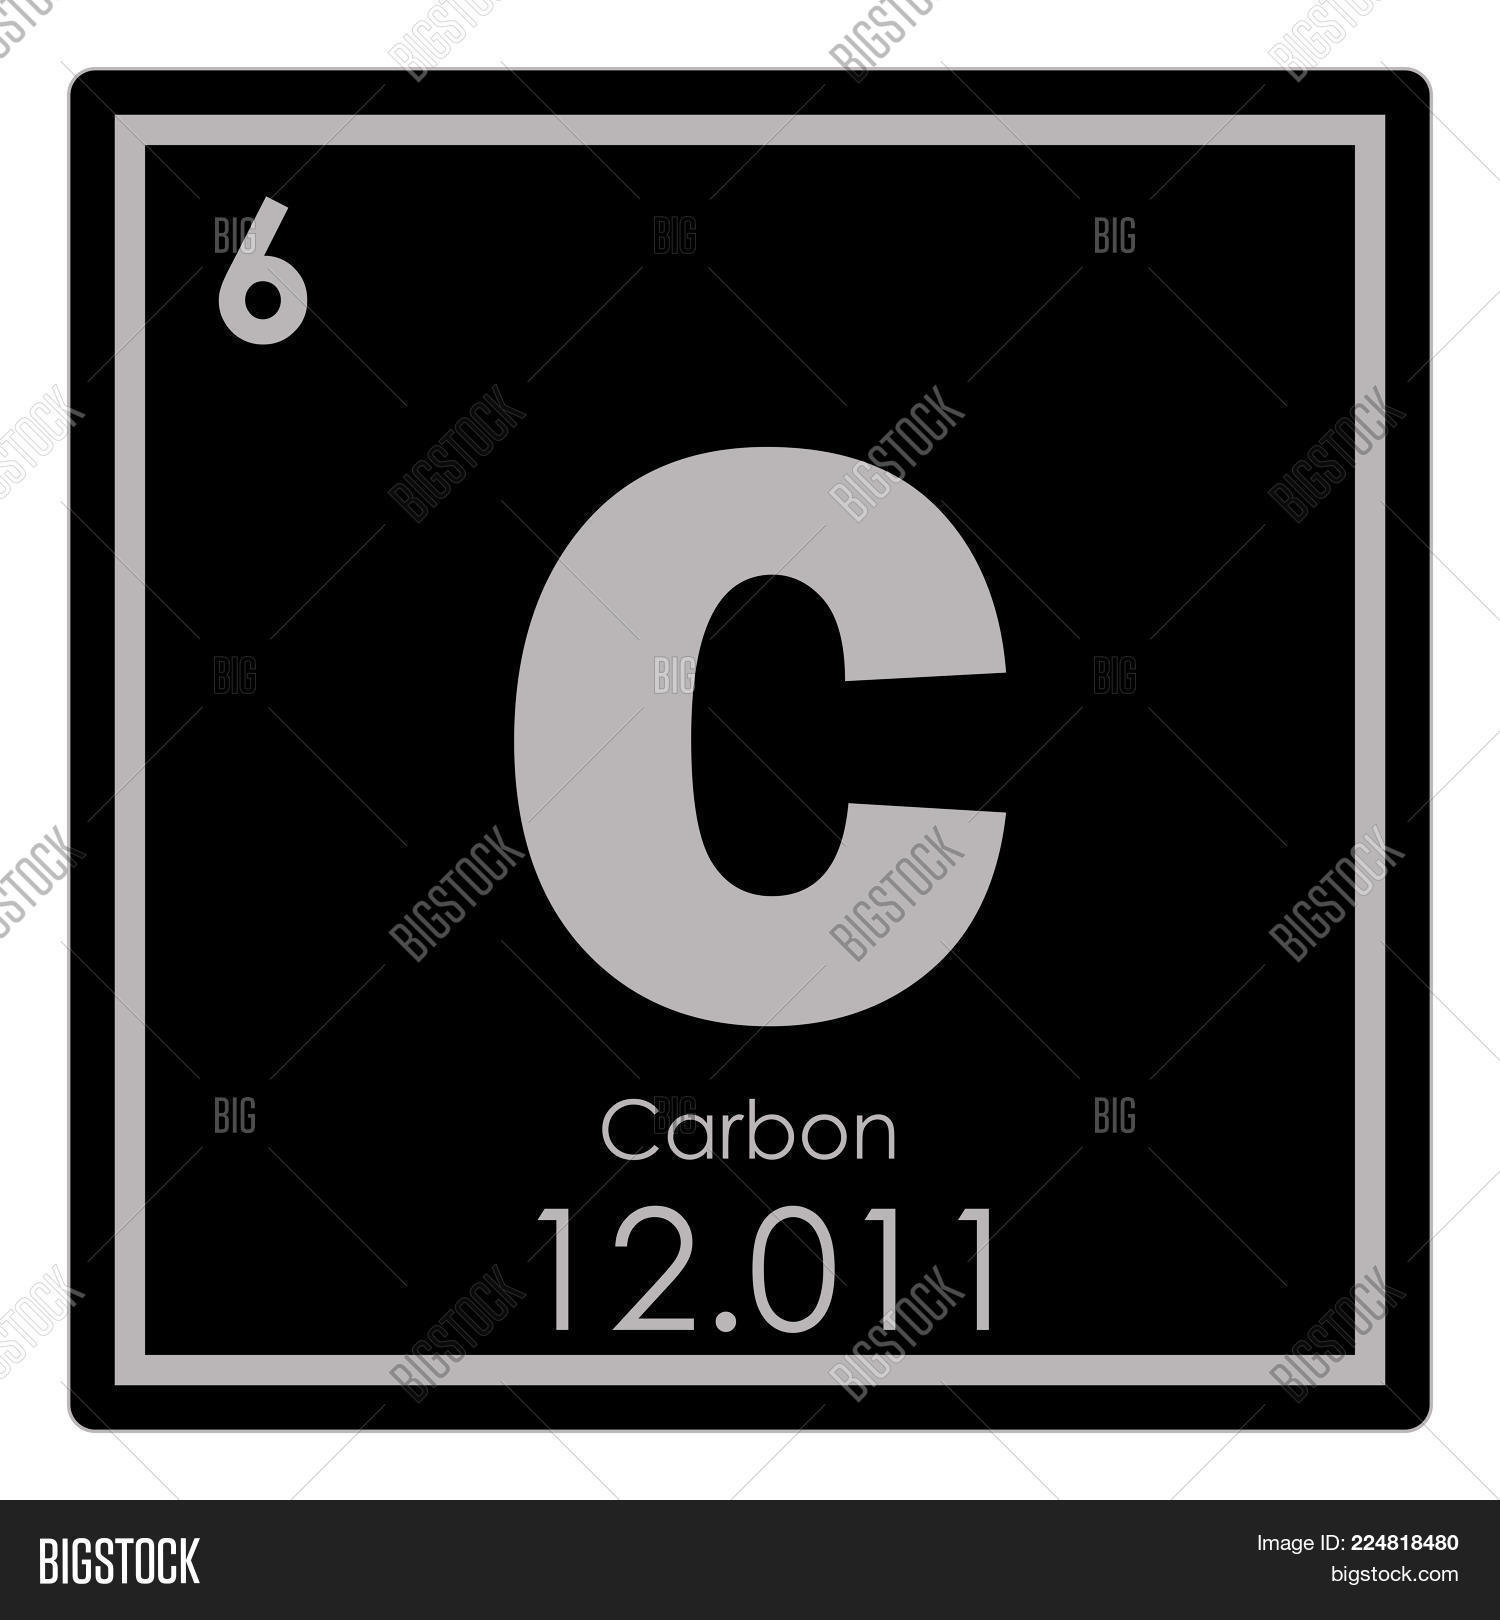 Carbon chemical image photo free trial bigstock carbon chemical element periodic table science symbol urtaz Gallery